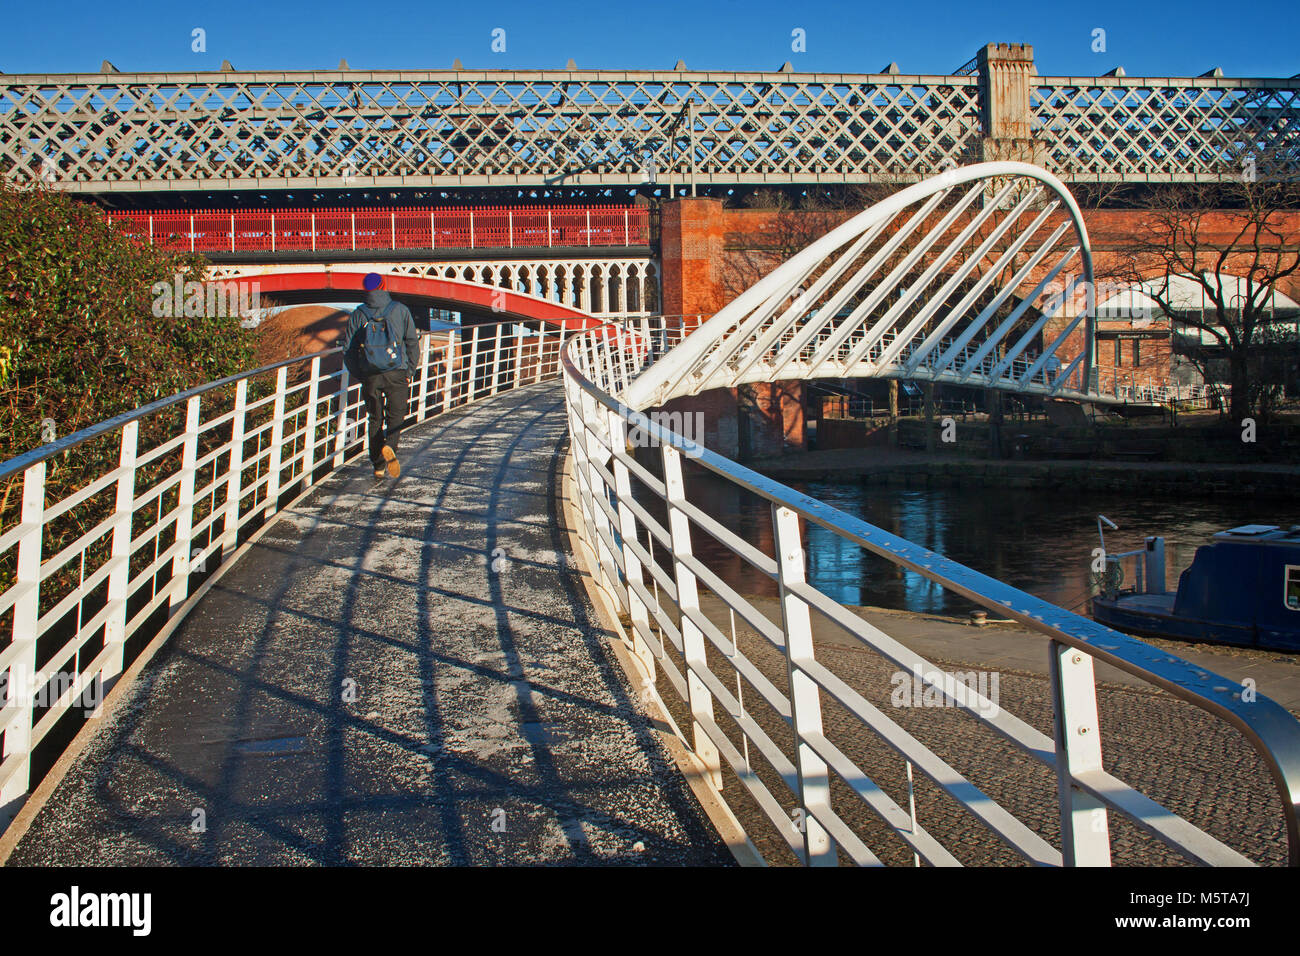 Crossing merchants' bridge at Castlefield, Manchester - Stock Image